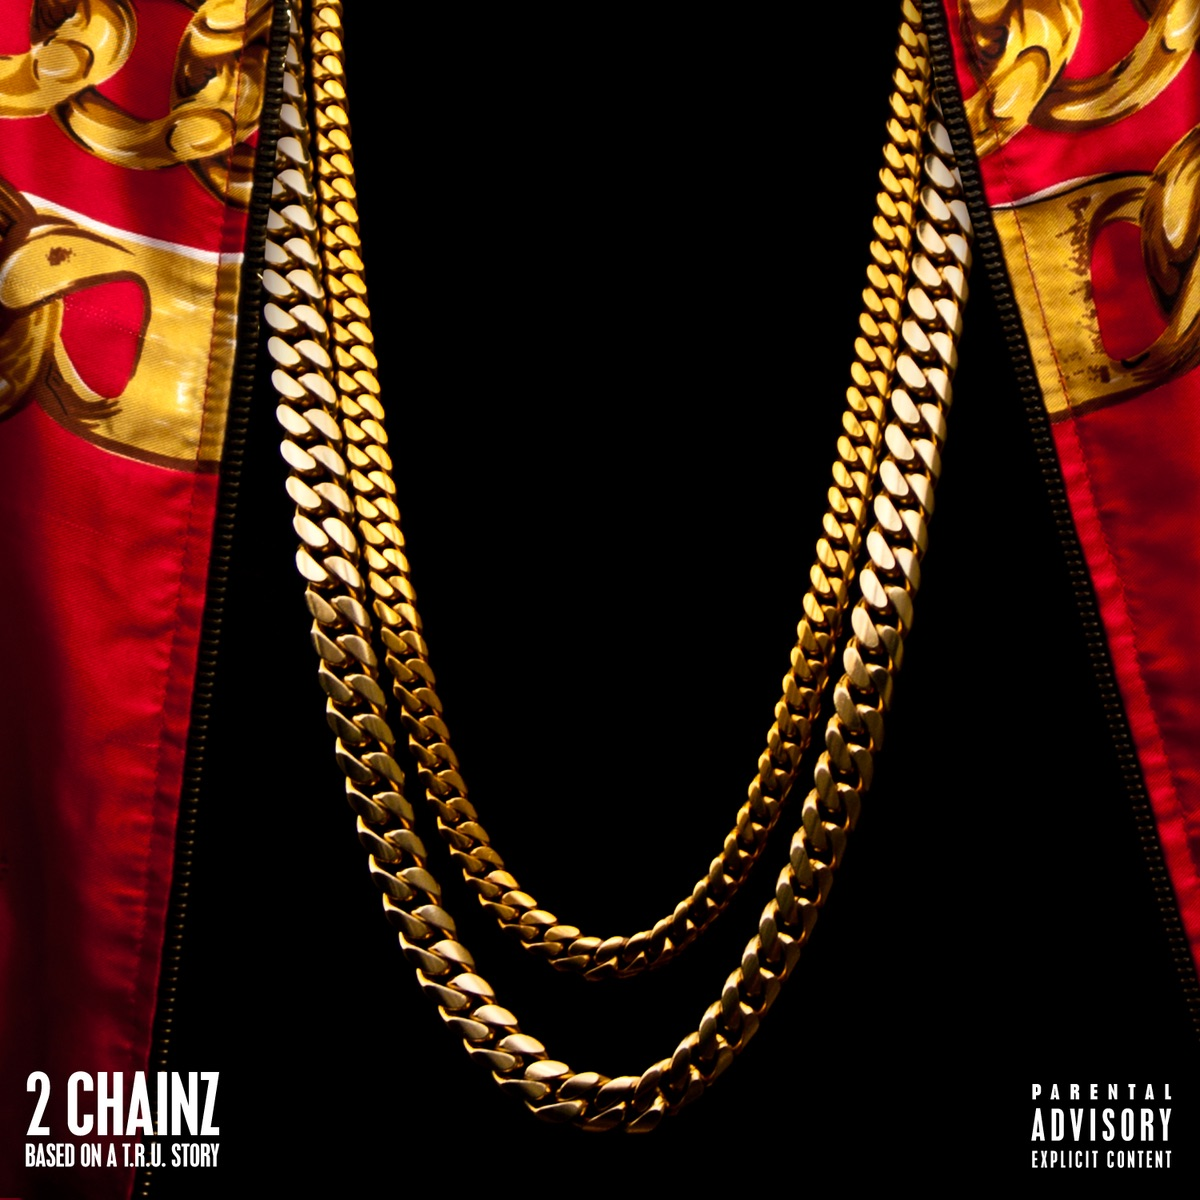 Based On a TRU Story Deluxe Version 2 Chainz CD cover